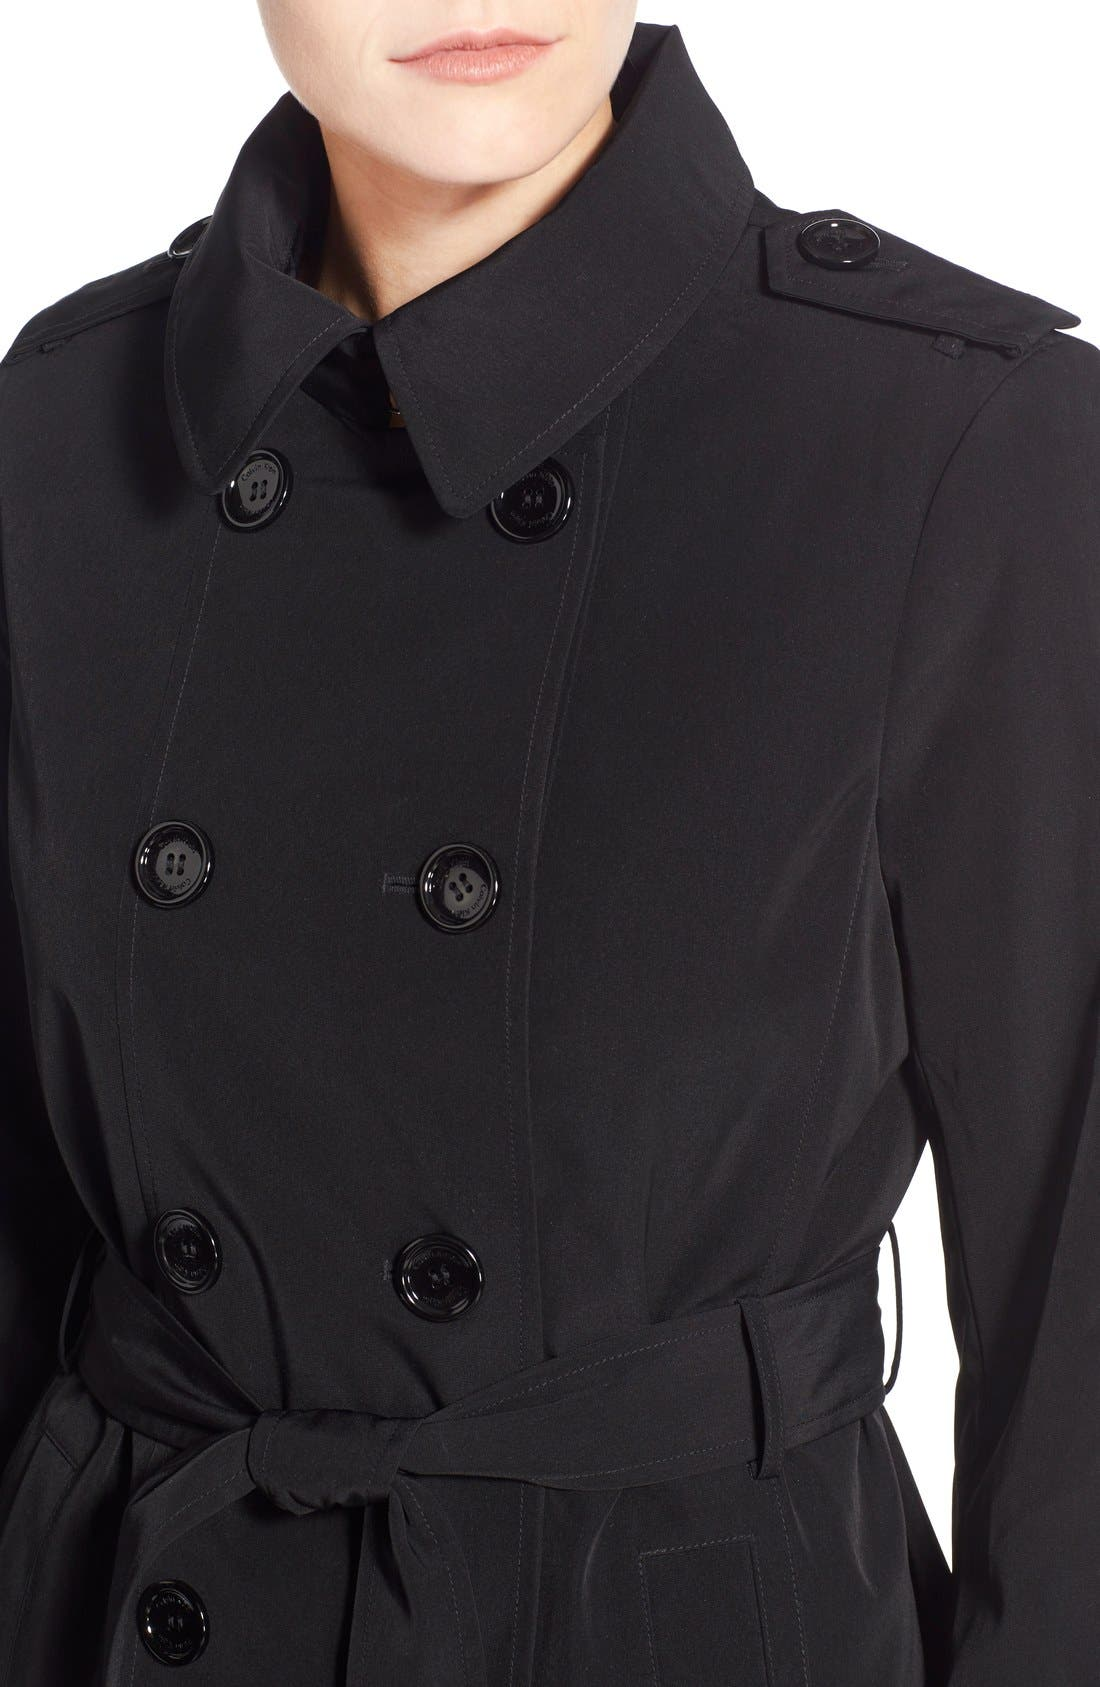 Double Breasted Trench Coat,                             Alternate thumbnail 6, color,                             001